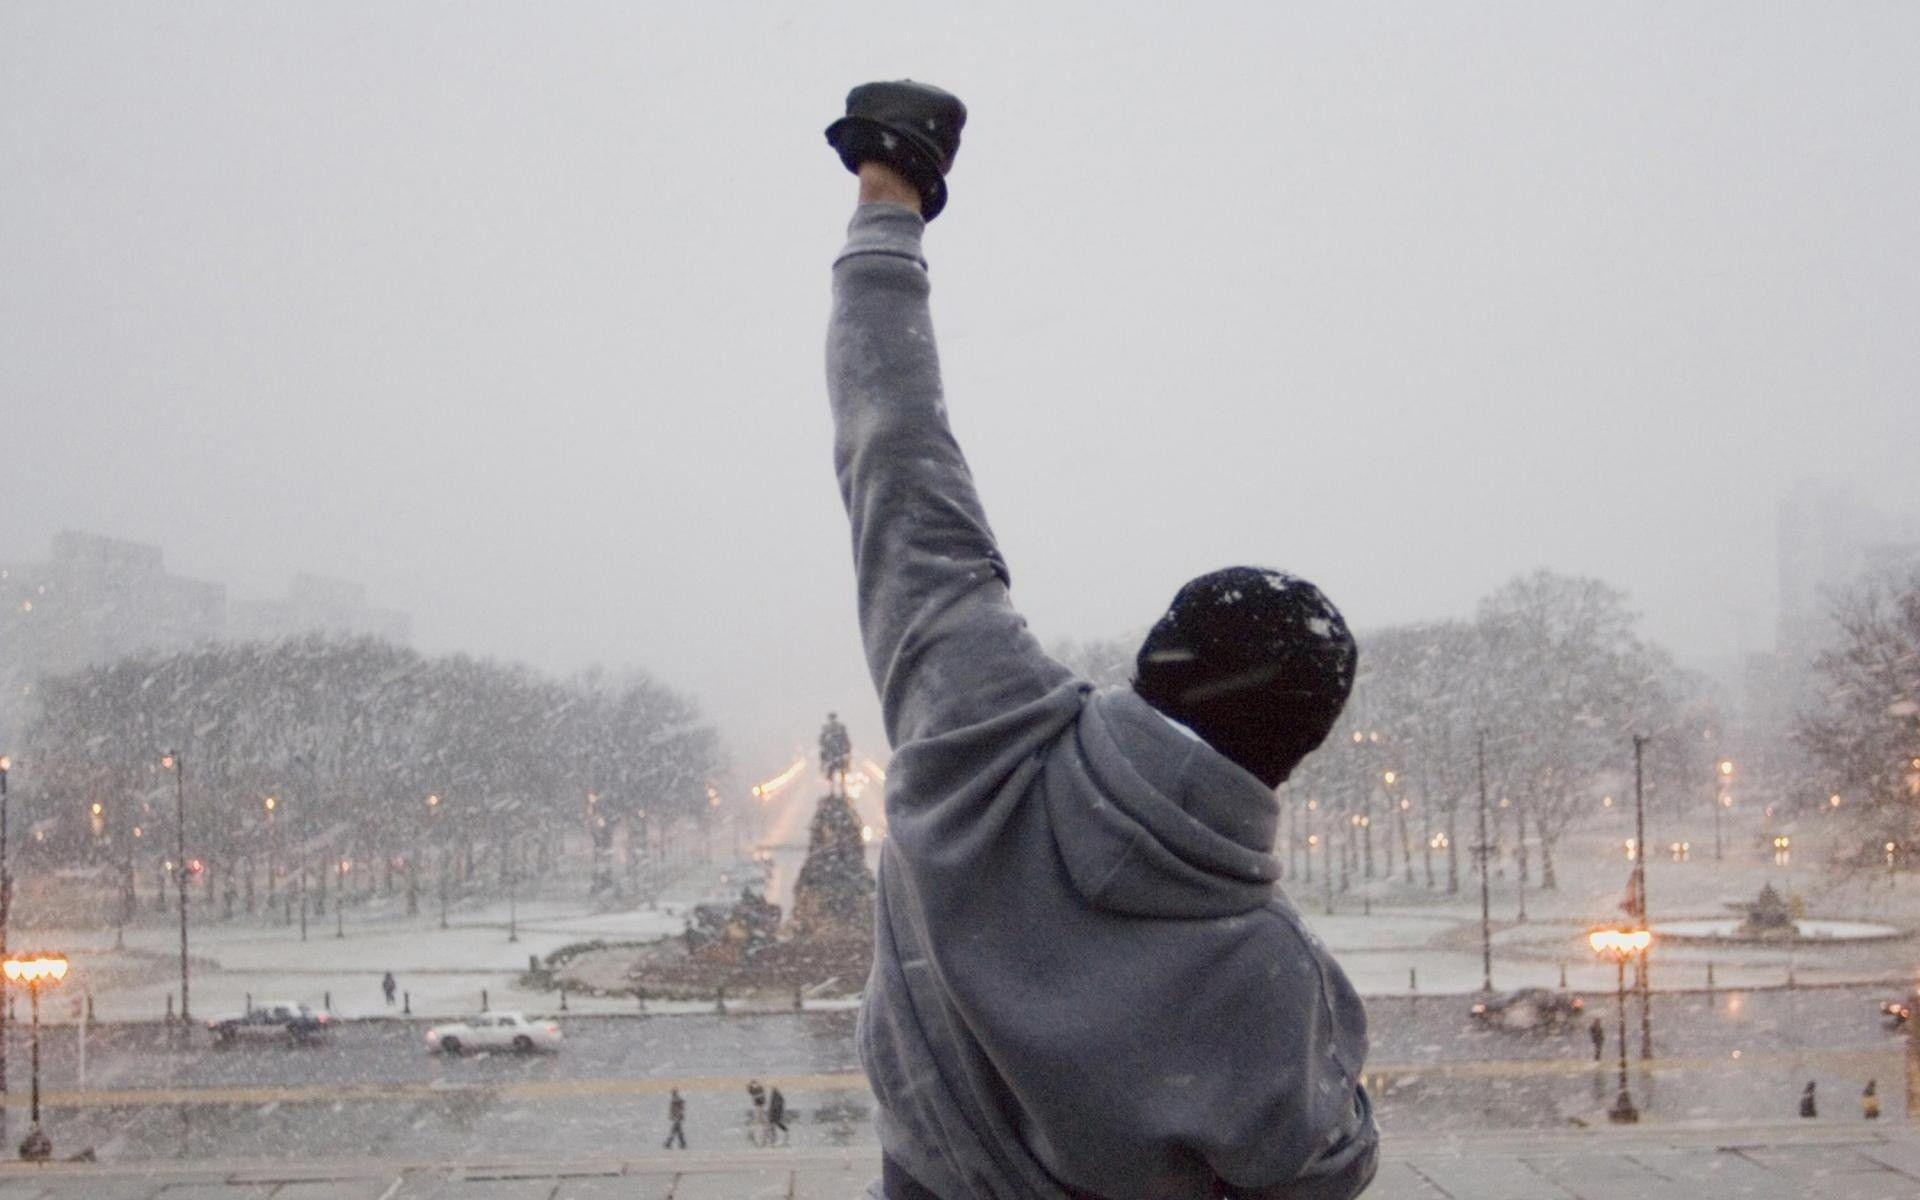 Sylvester Stallone As Rocky Balboa Wallpaper Wide or HD | Male ...